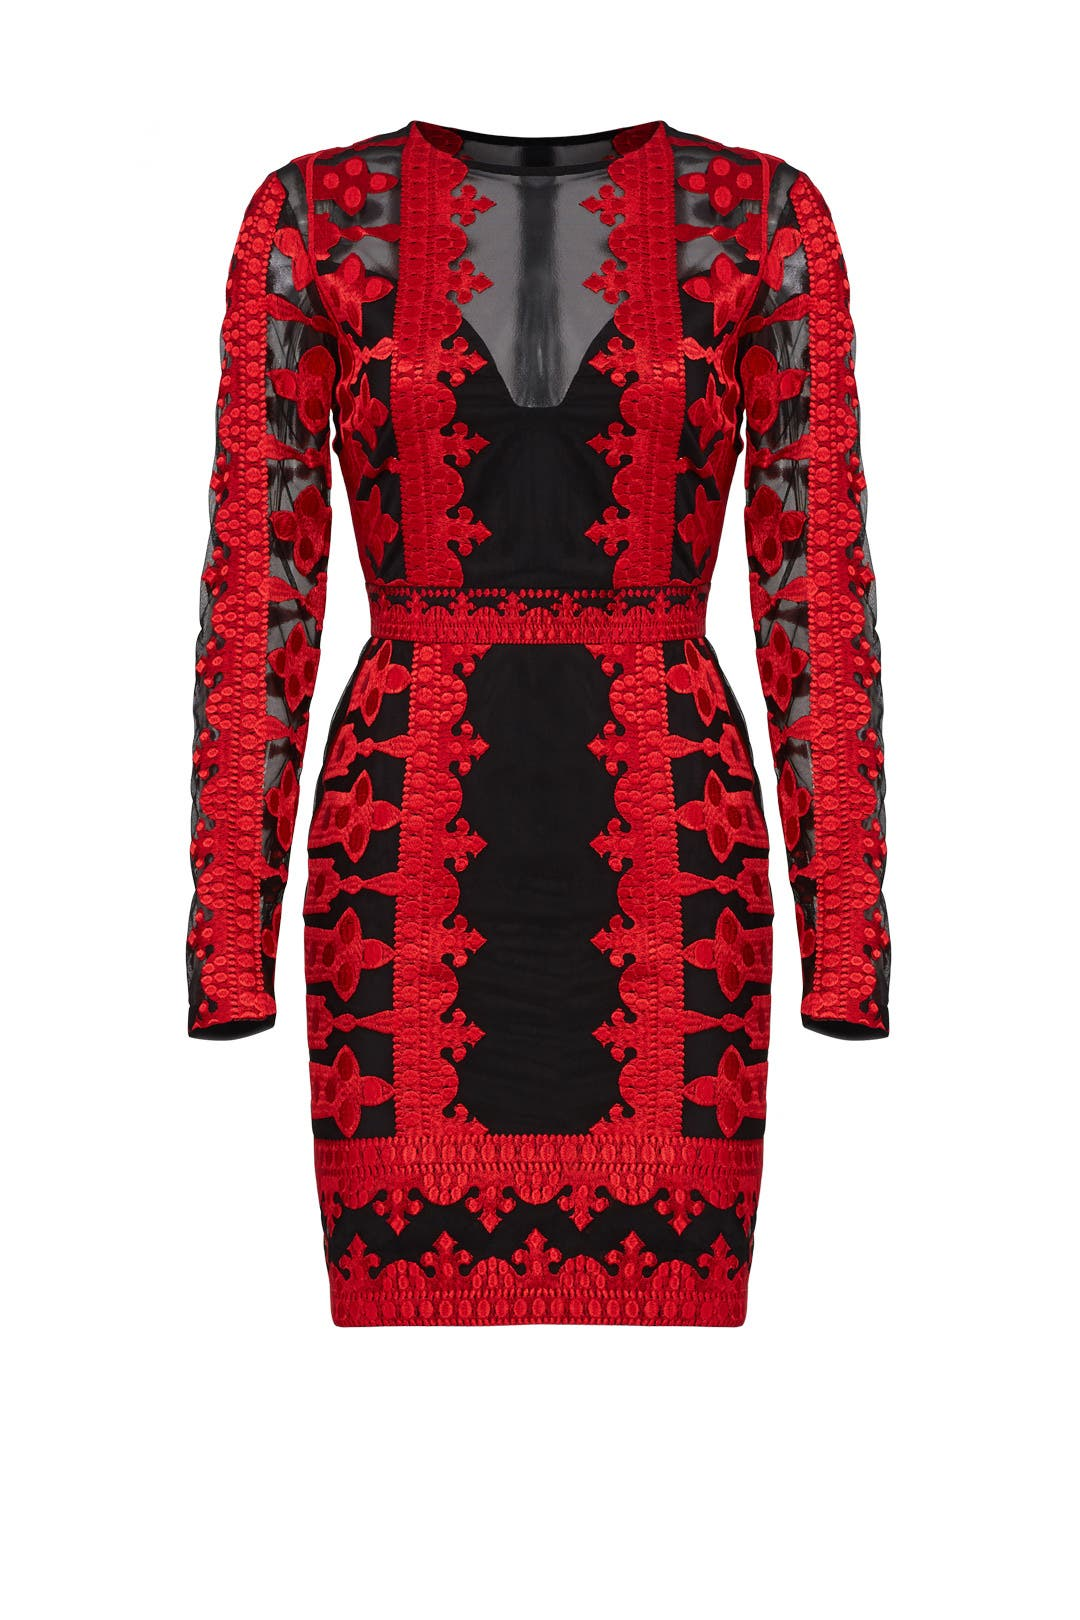 Red Embroidered Mesh Sheath By Nicole Miller For 55 75 The Runway